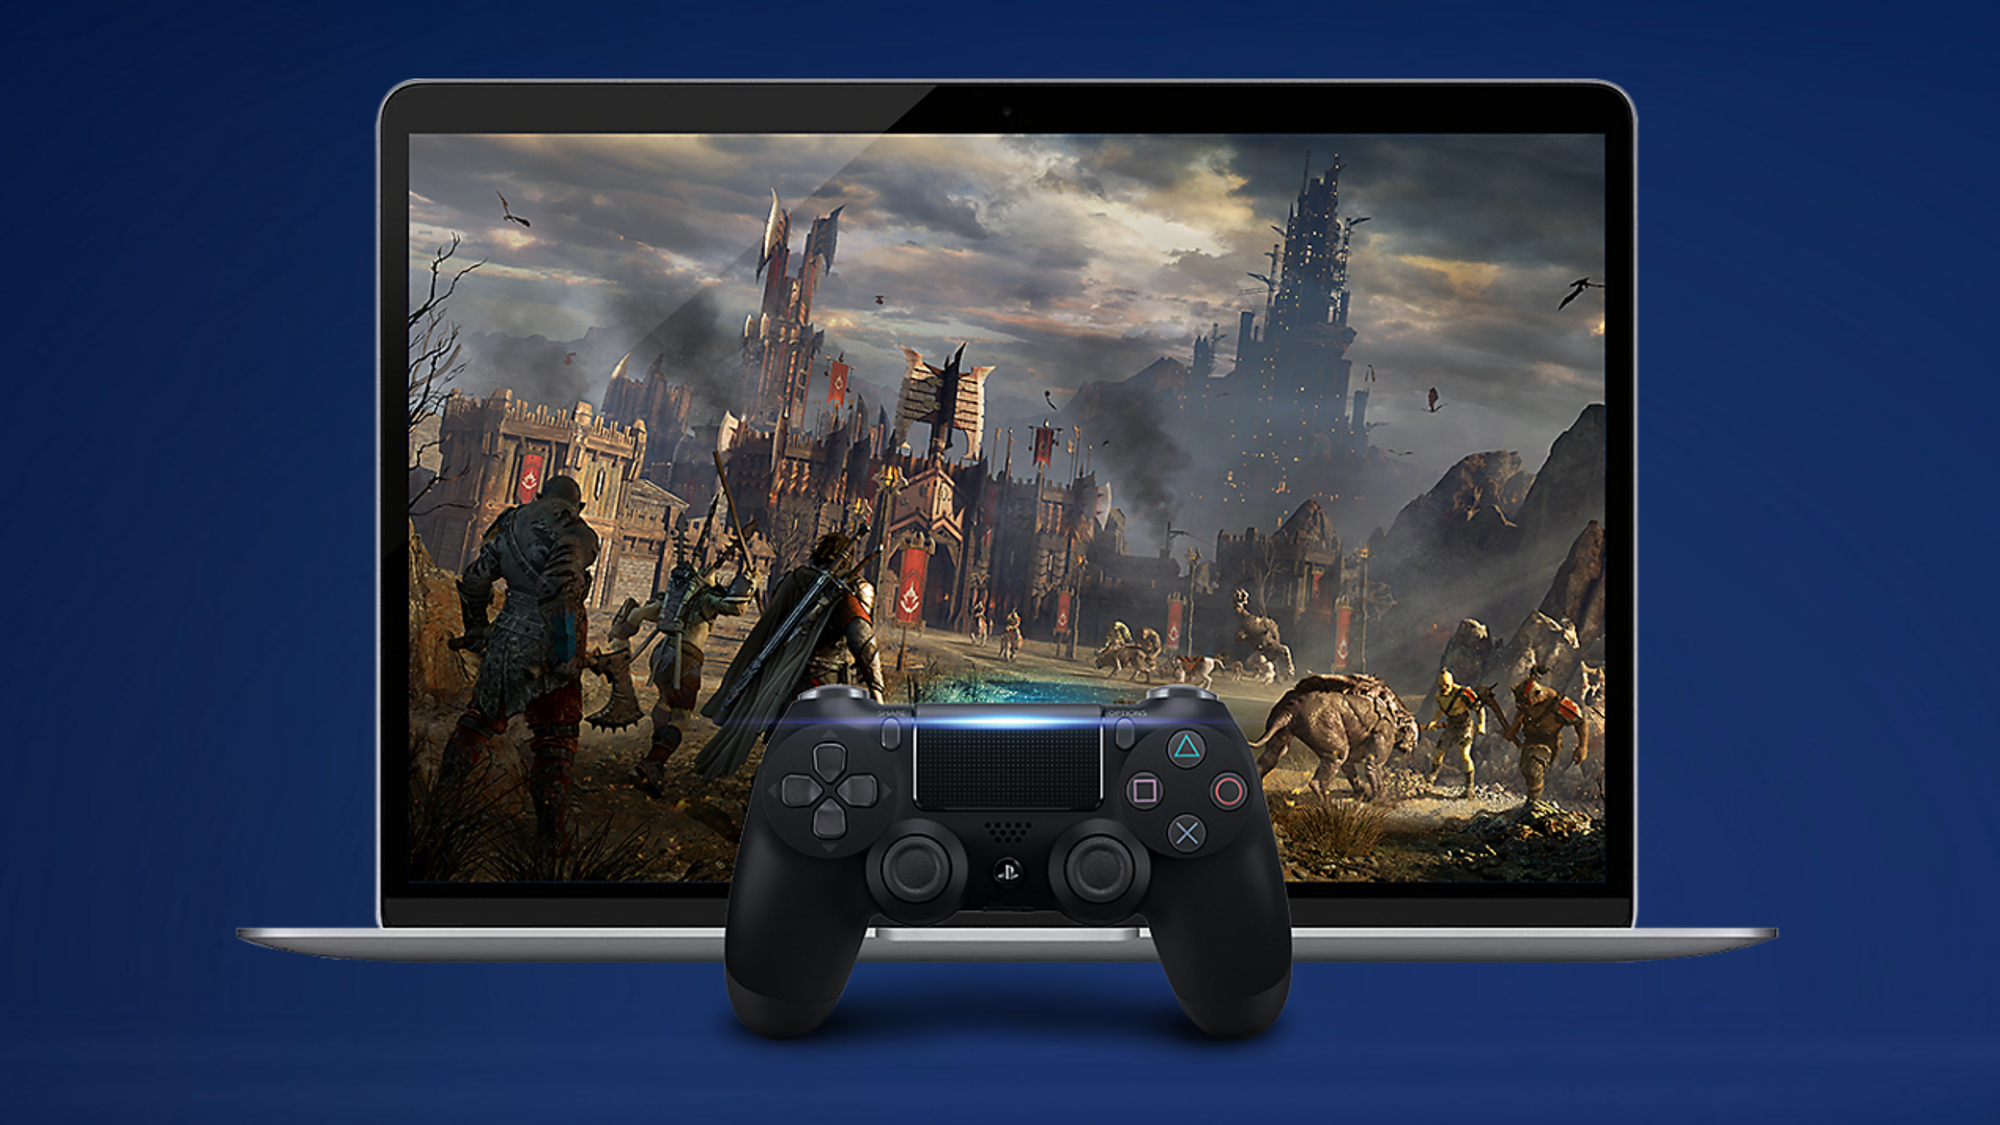 Best Game Streaming Services: Playstation Now